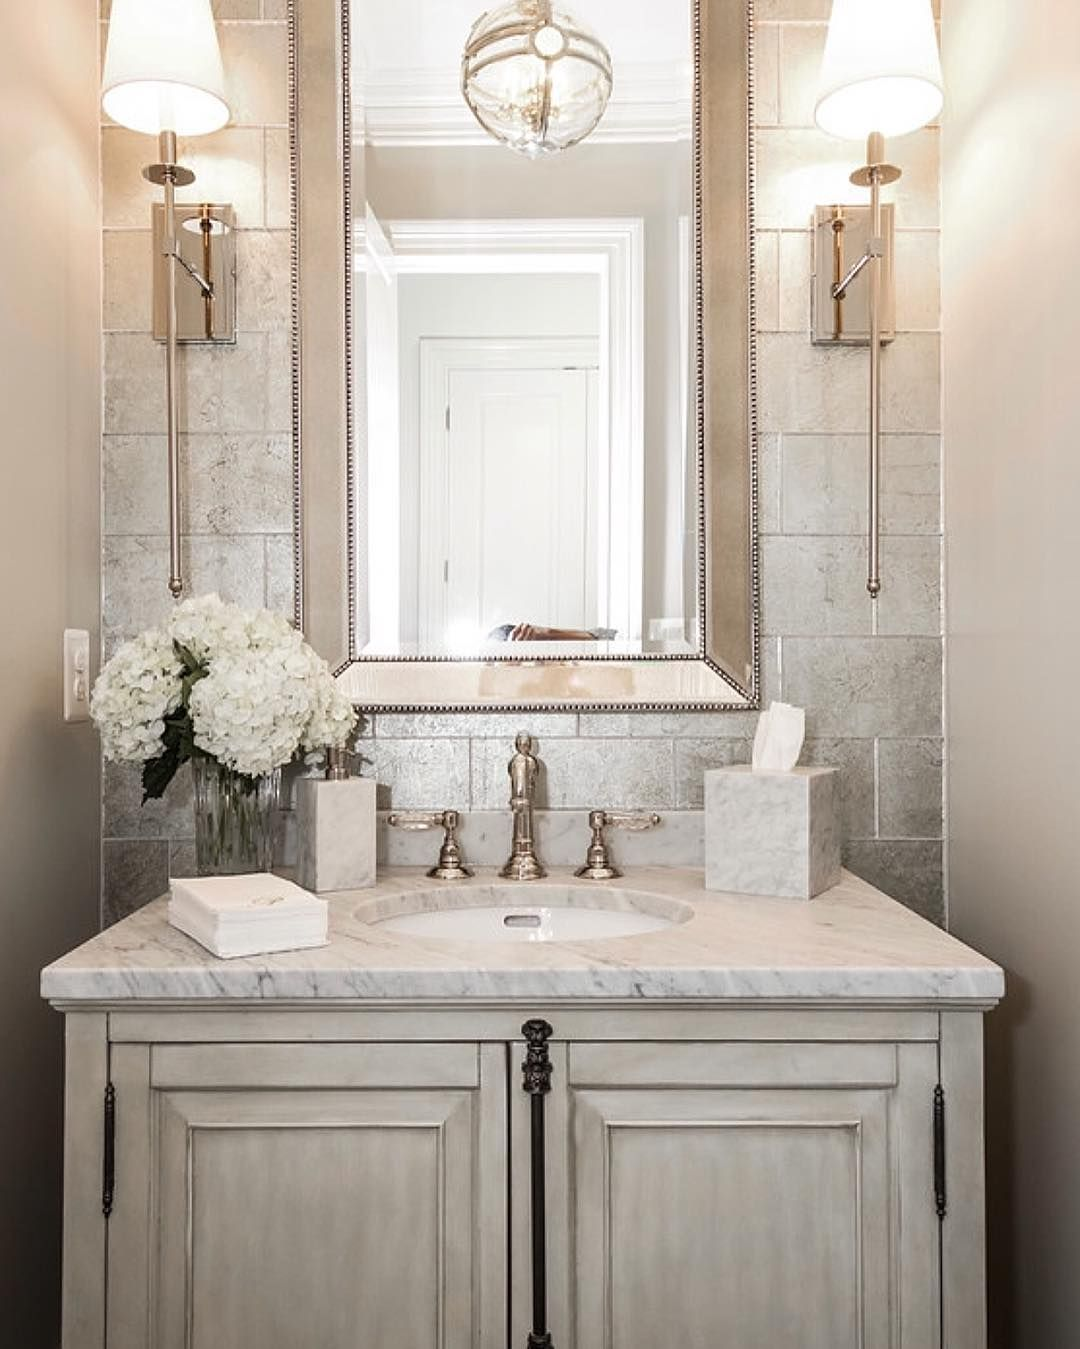 Such An Elegant Powder Room By Castlwood Custom Builders - Cost to add bathroom to existing space